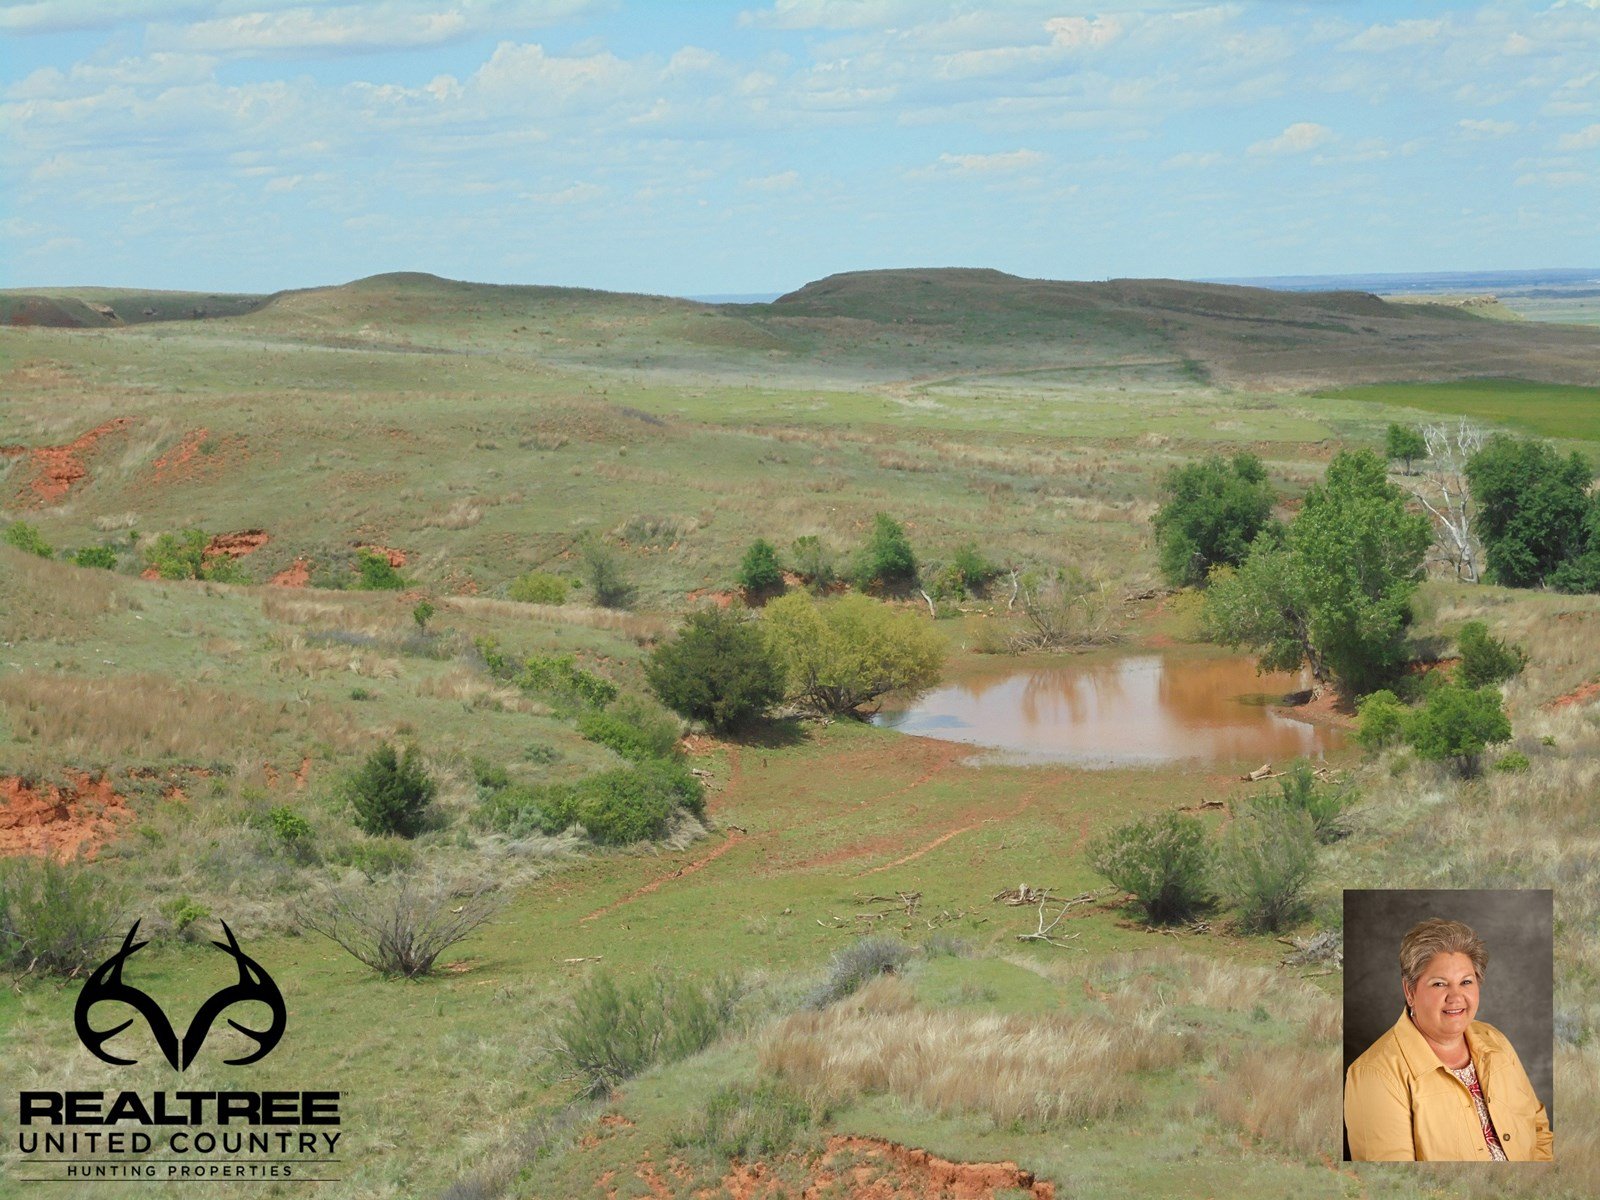 Hunting & Recreational Land For Sale in Harper County, OK